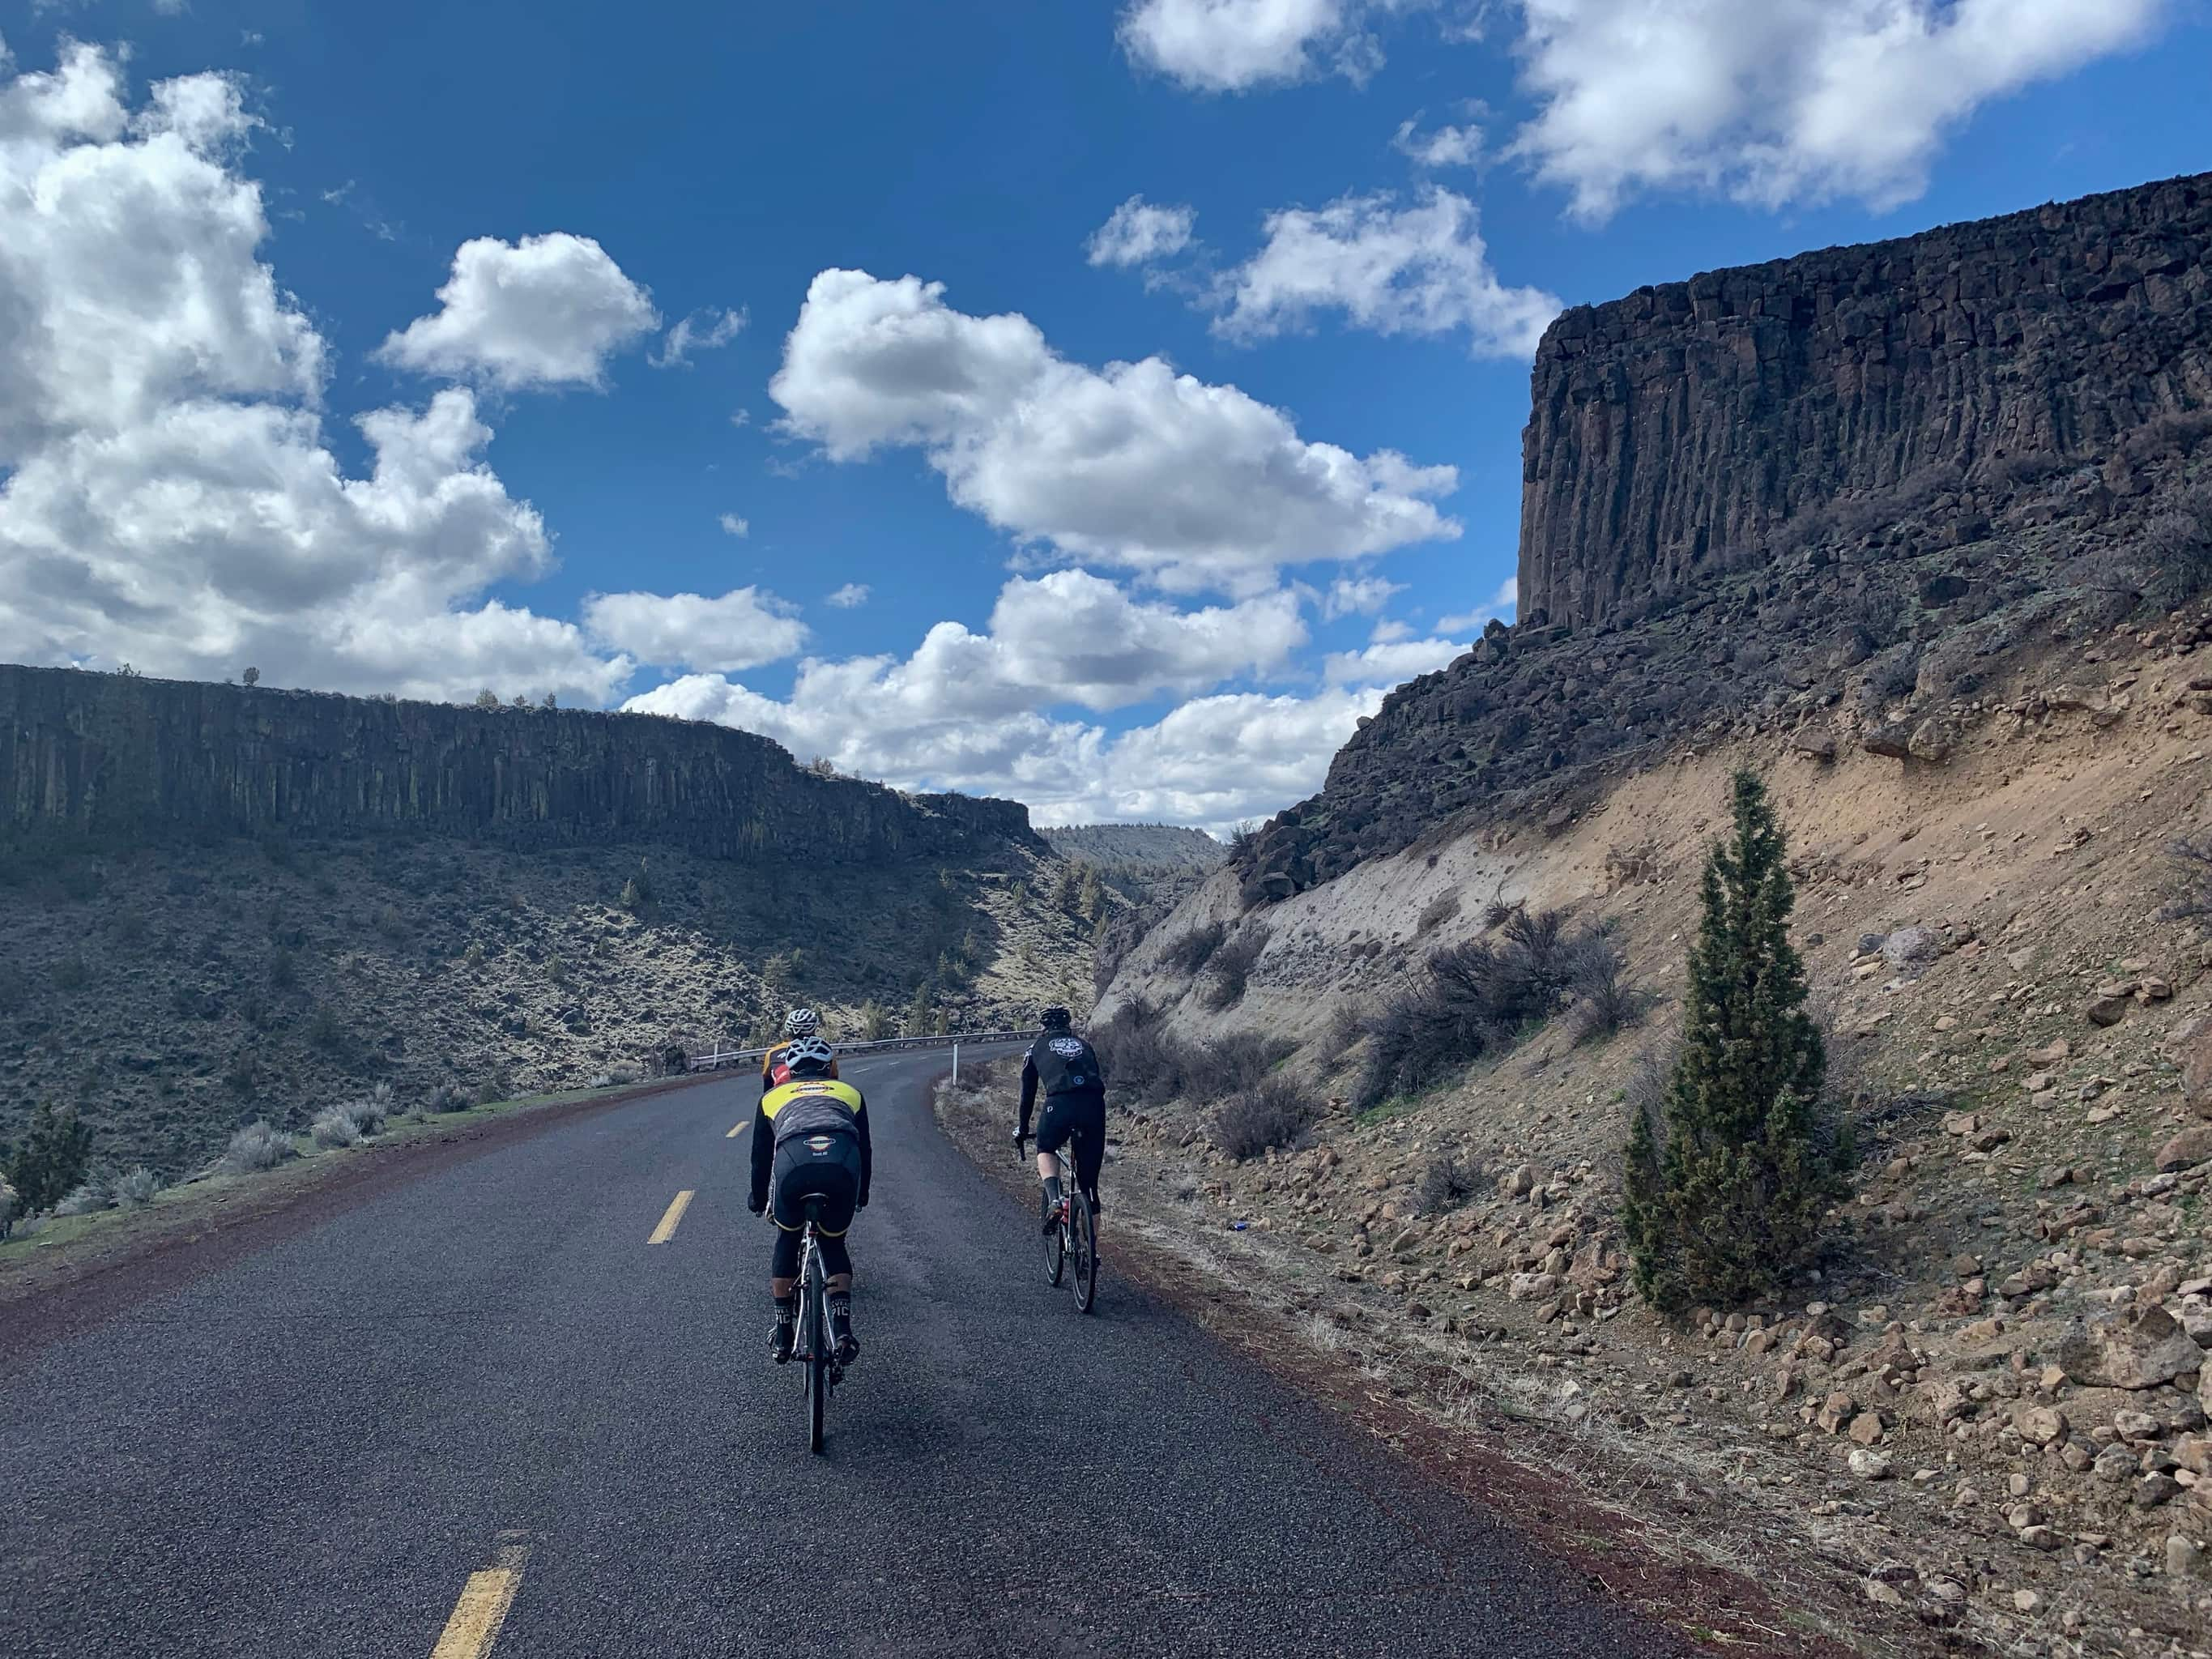 Cyclists on paved road with Mt. Jefferson in background.